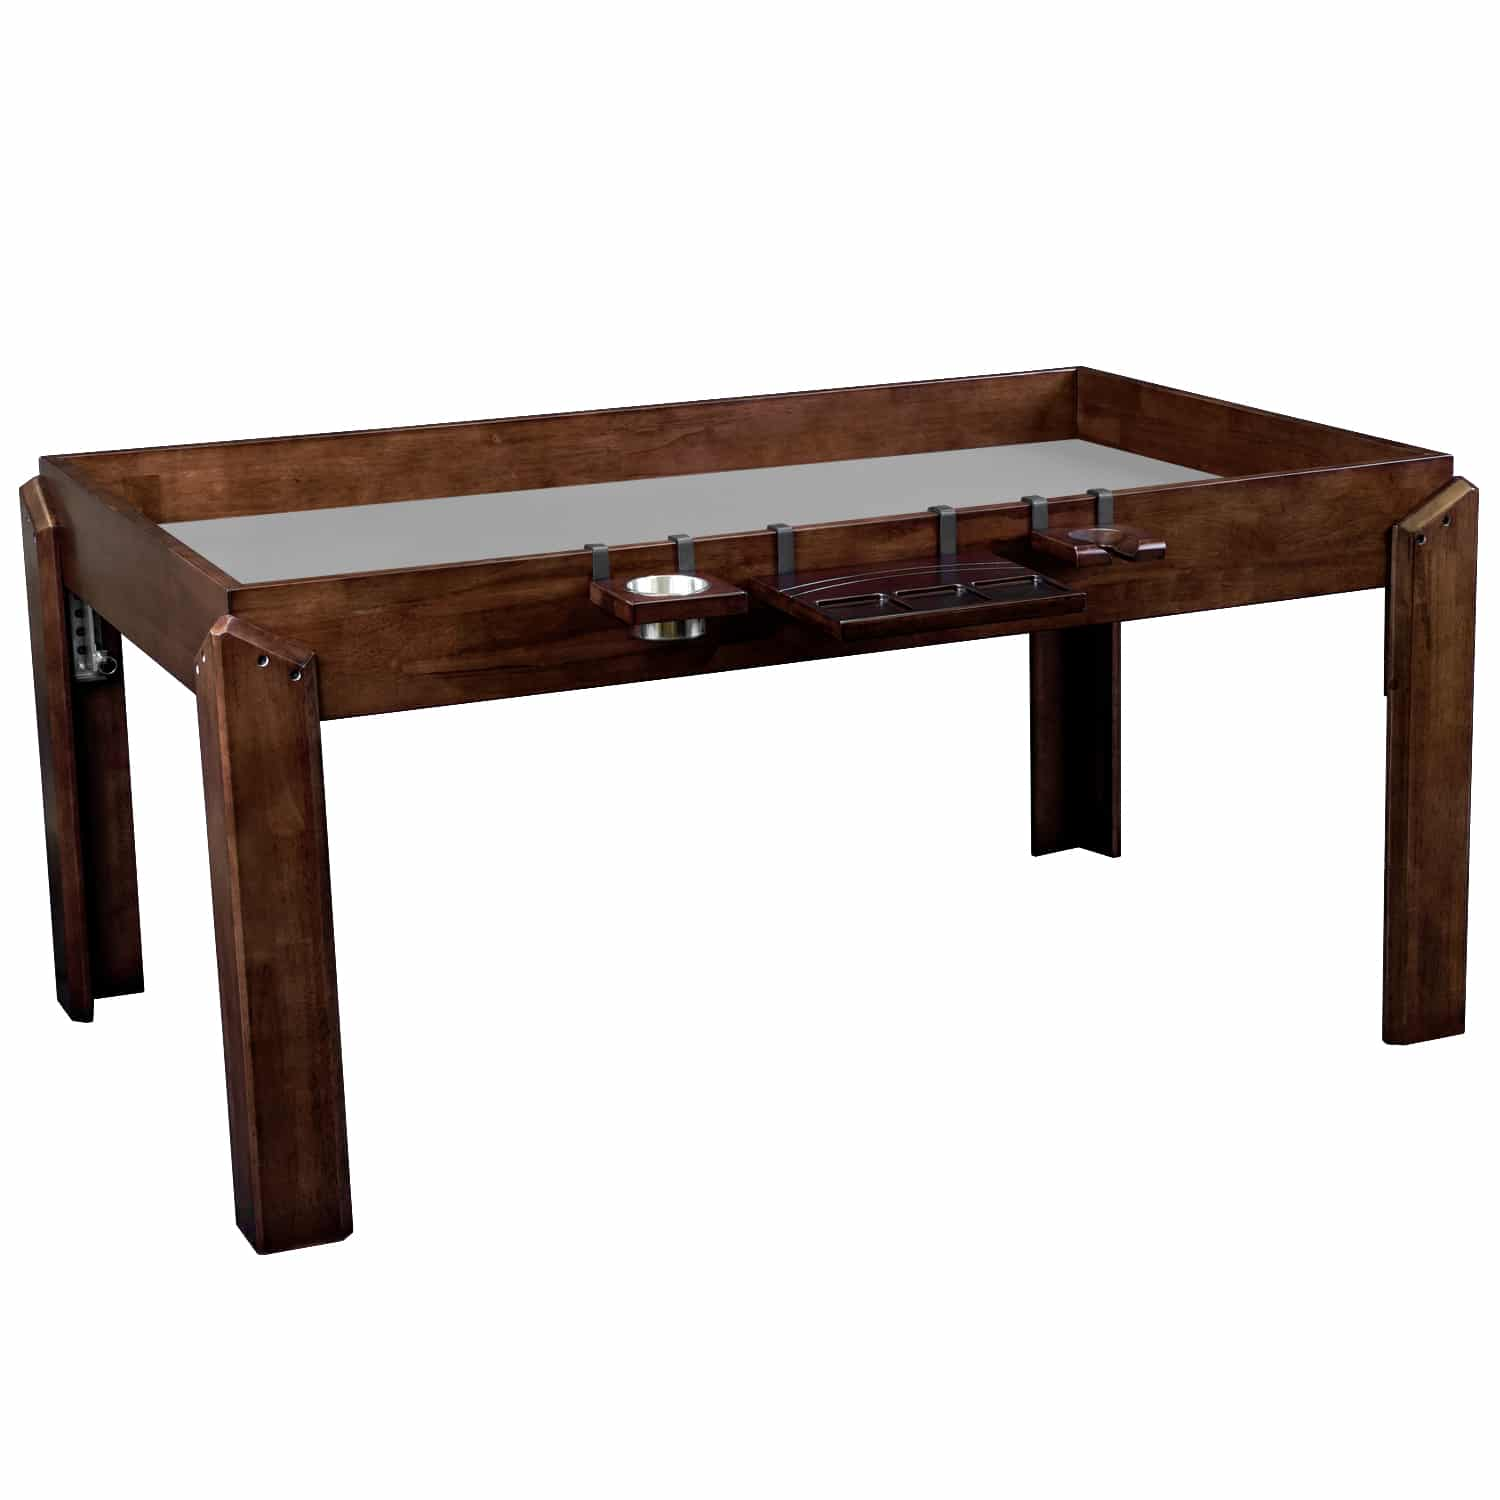 game table, table, gaming table, dining table, board game table